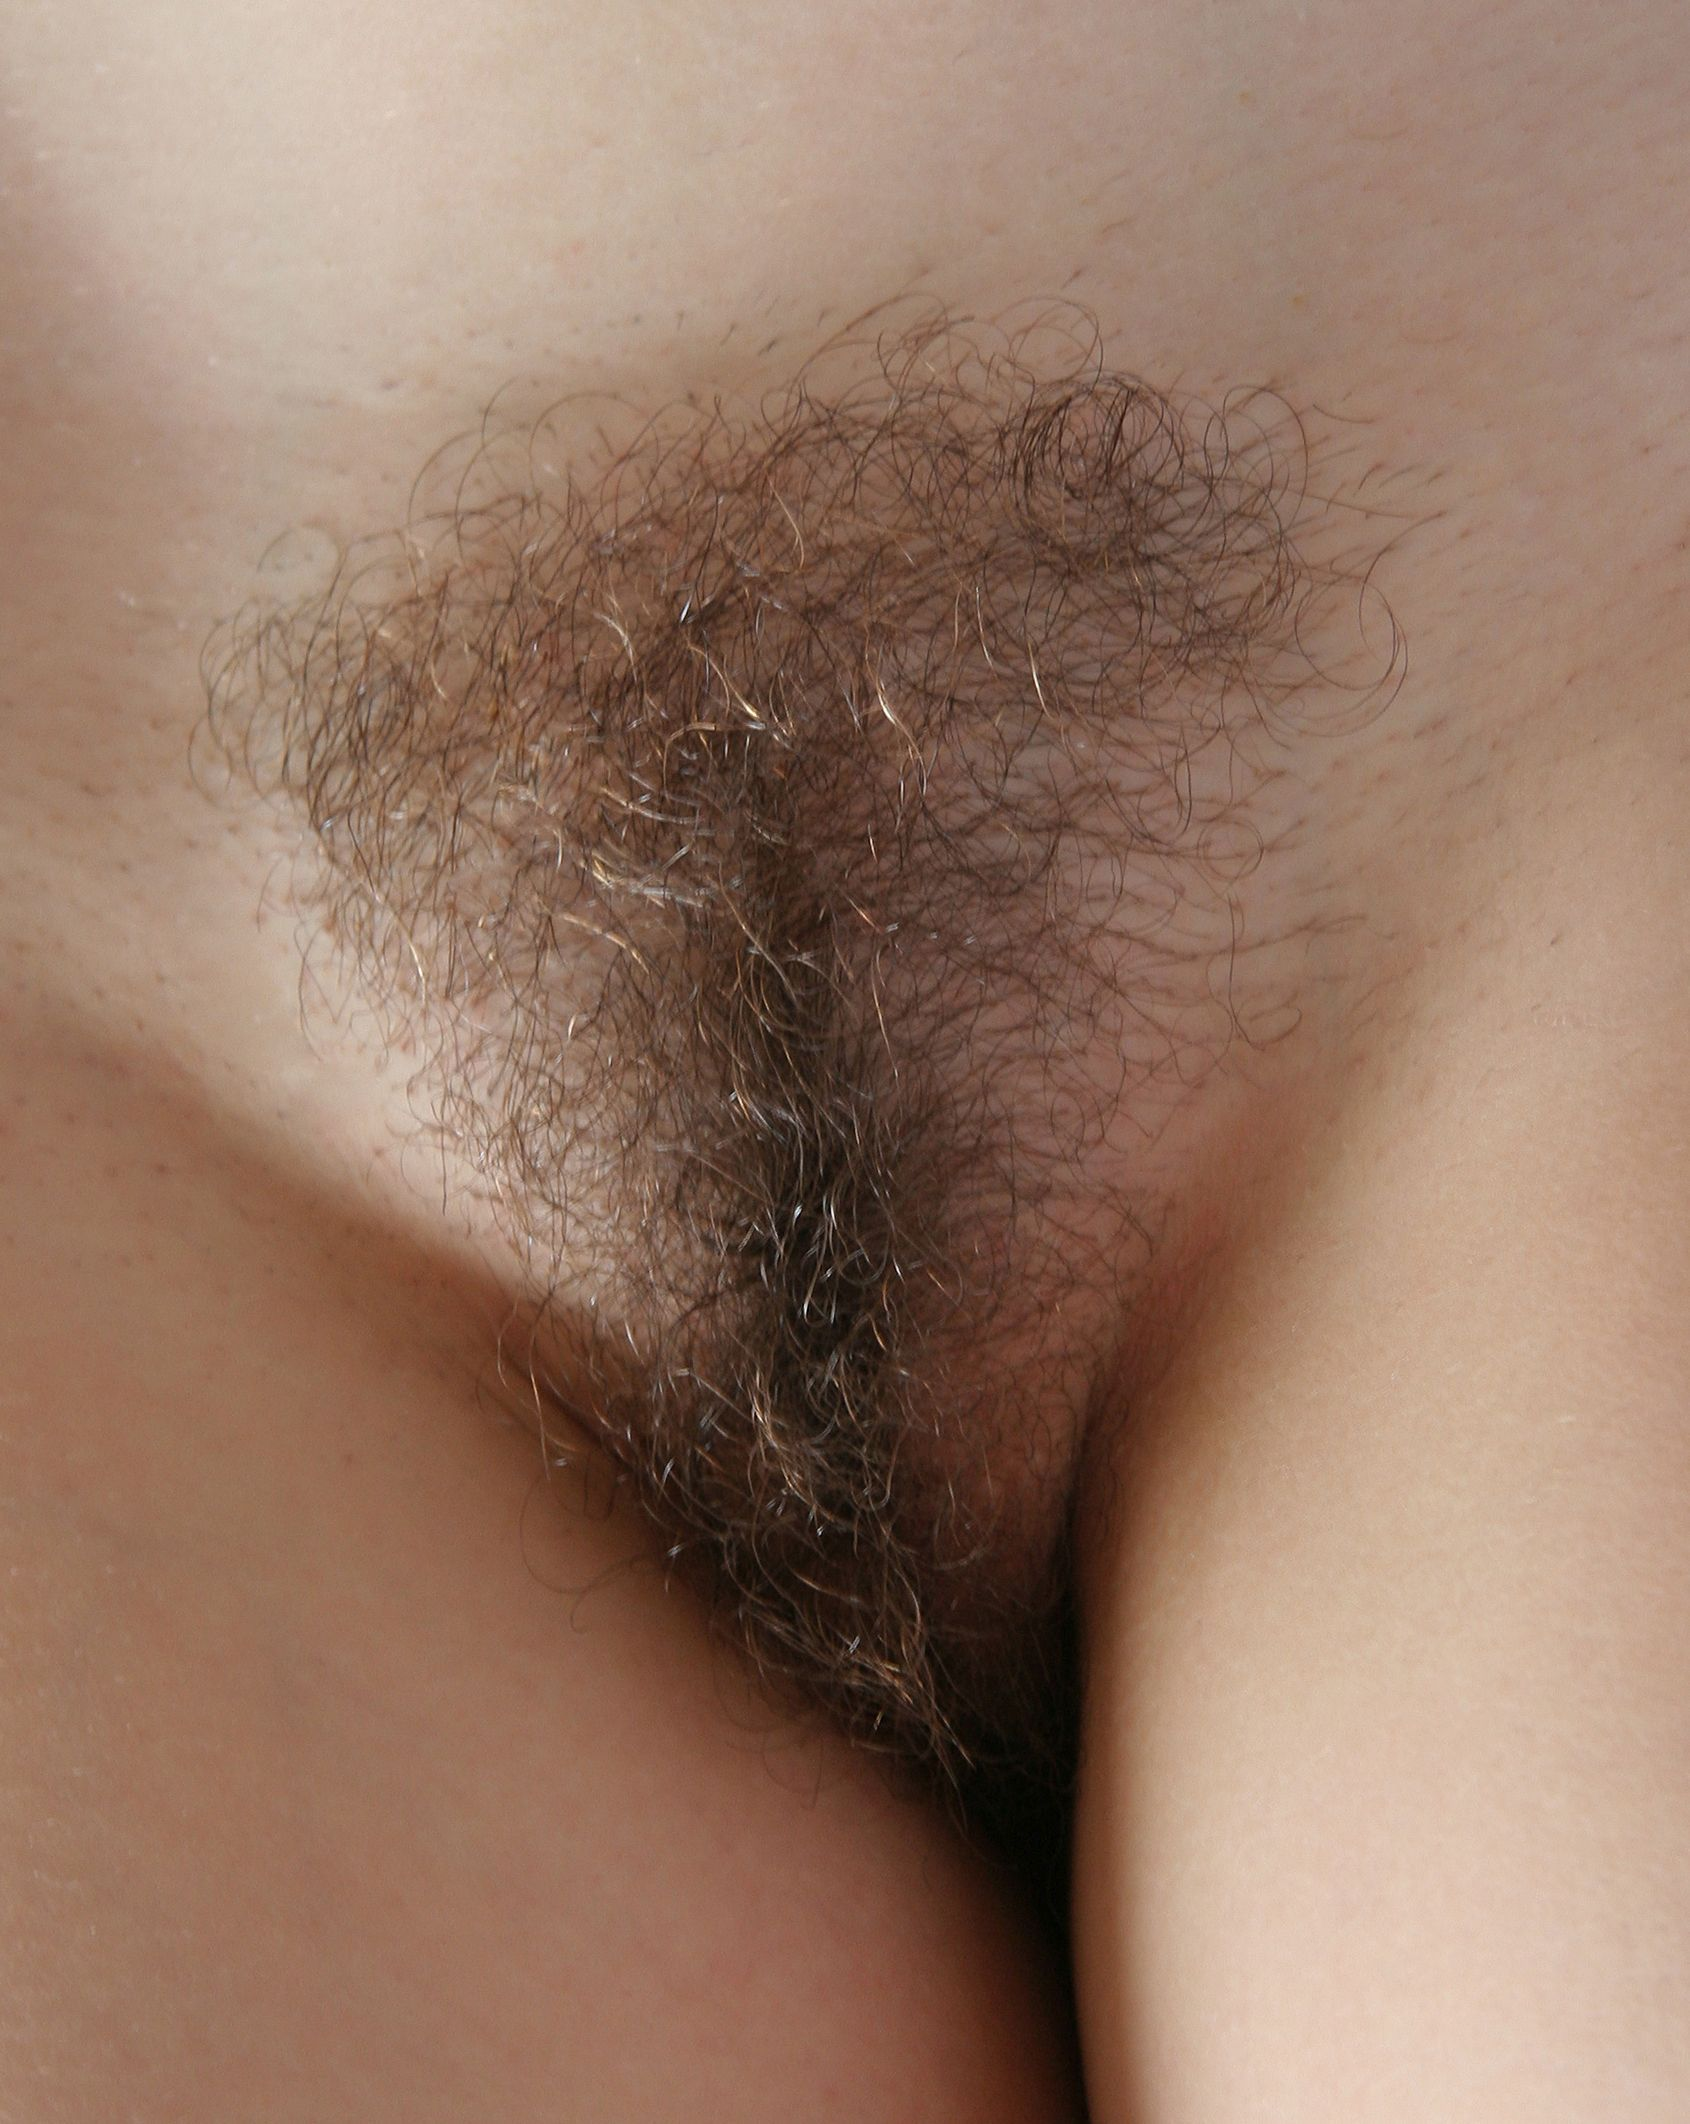 Hair pictures pubic red